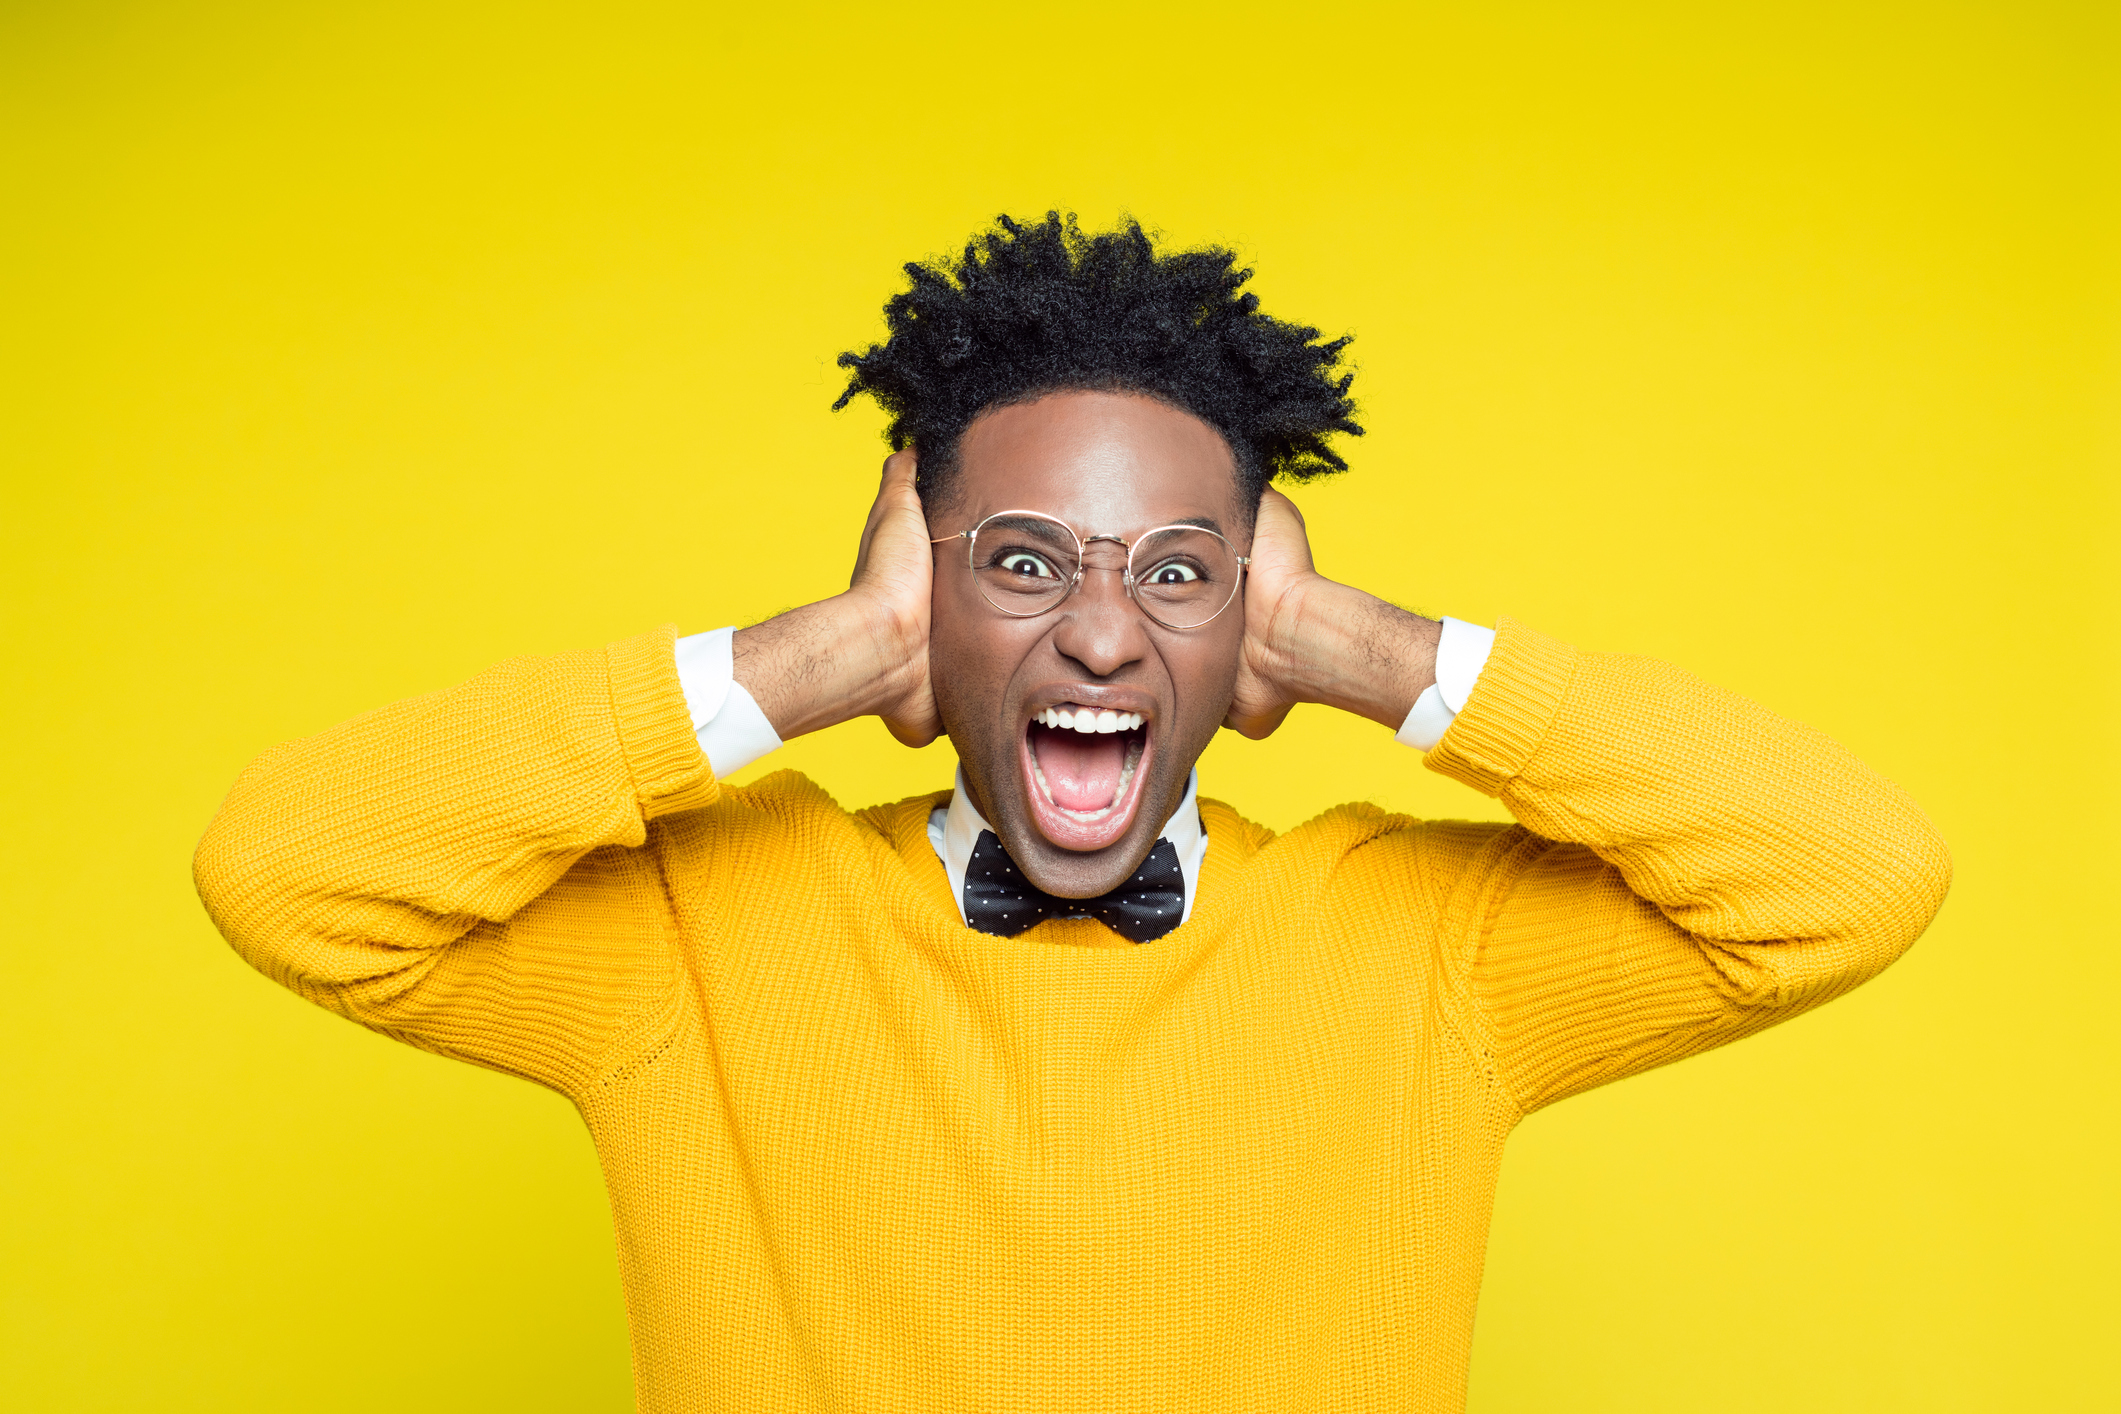 Portrait of angry nerdy young afro american man wearing yellow sweater and black bow tie shouting at the camera against yellow background.